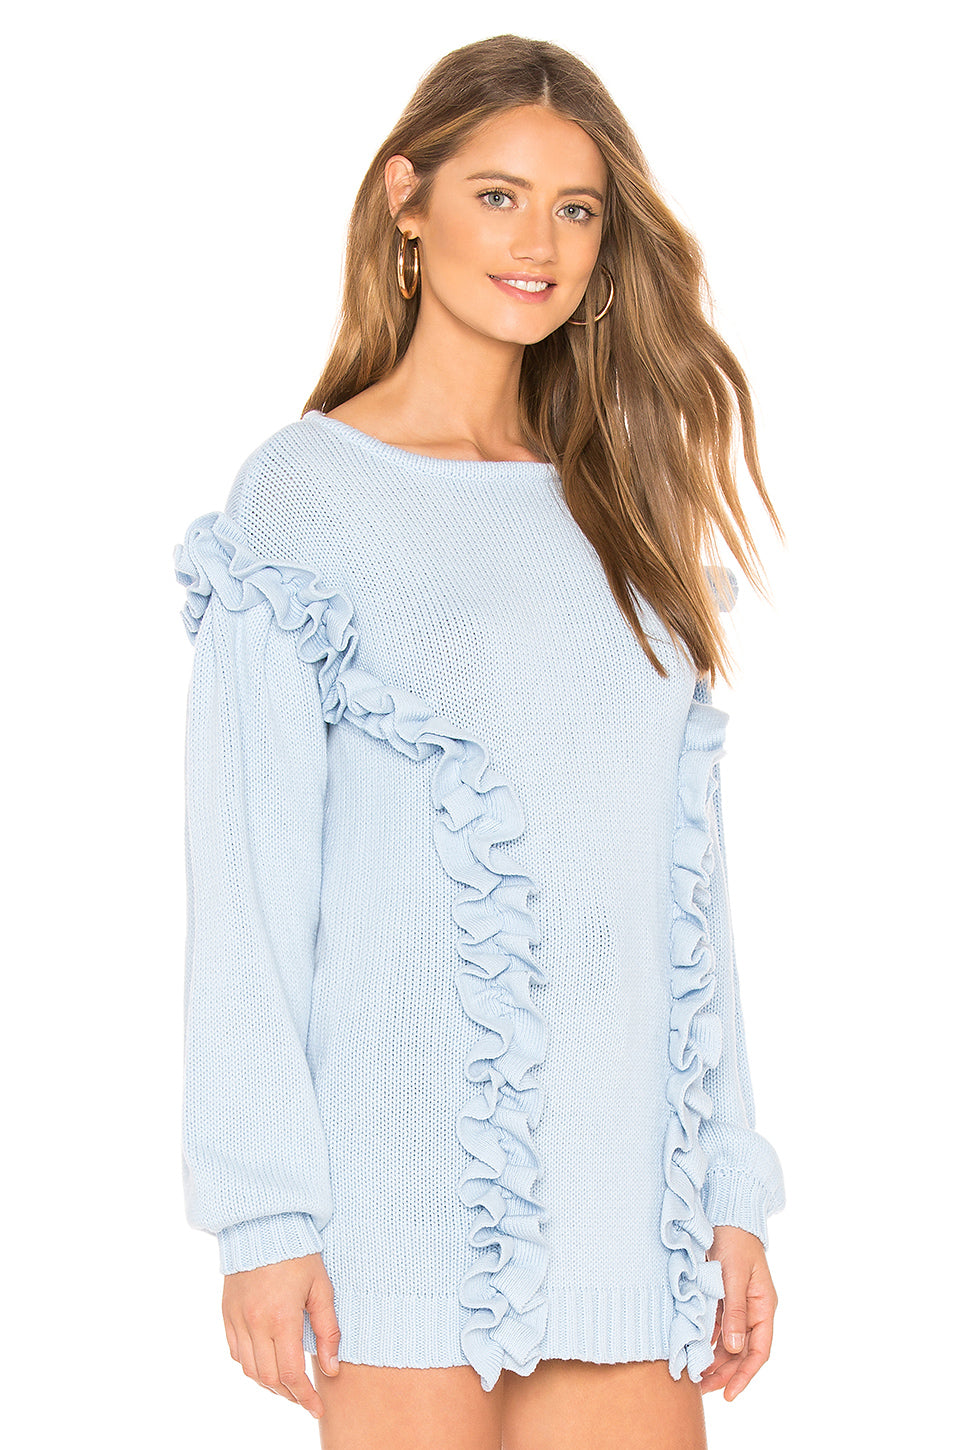 Ruffle Sweater